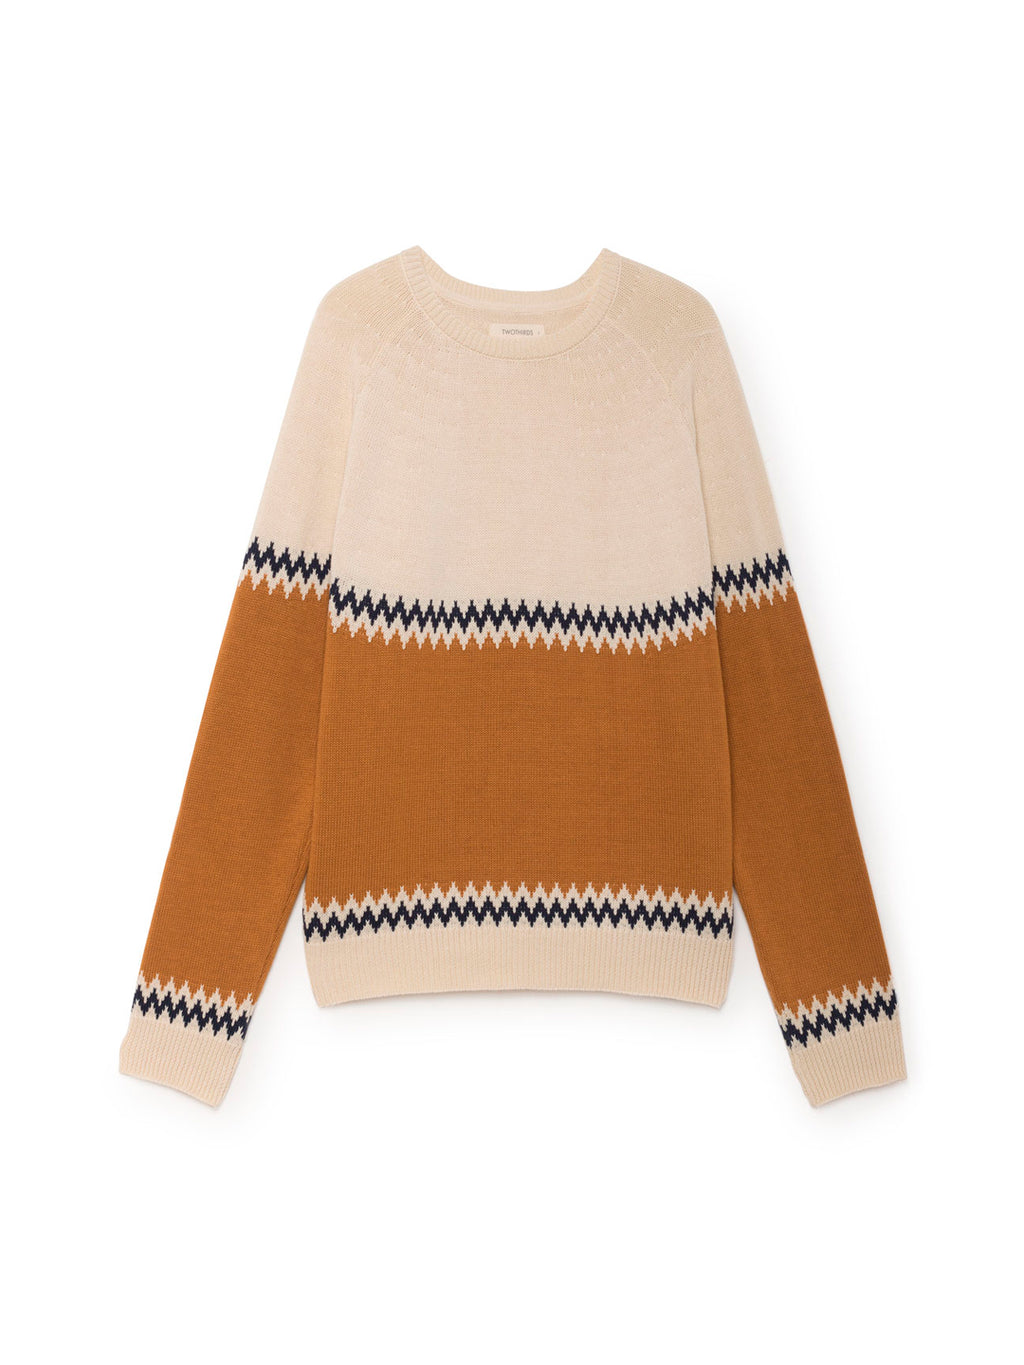 TWOTHIRDS Womens Knit: Sibu - Terracota front